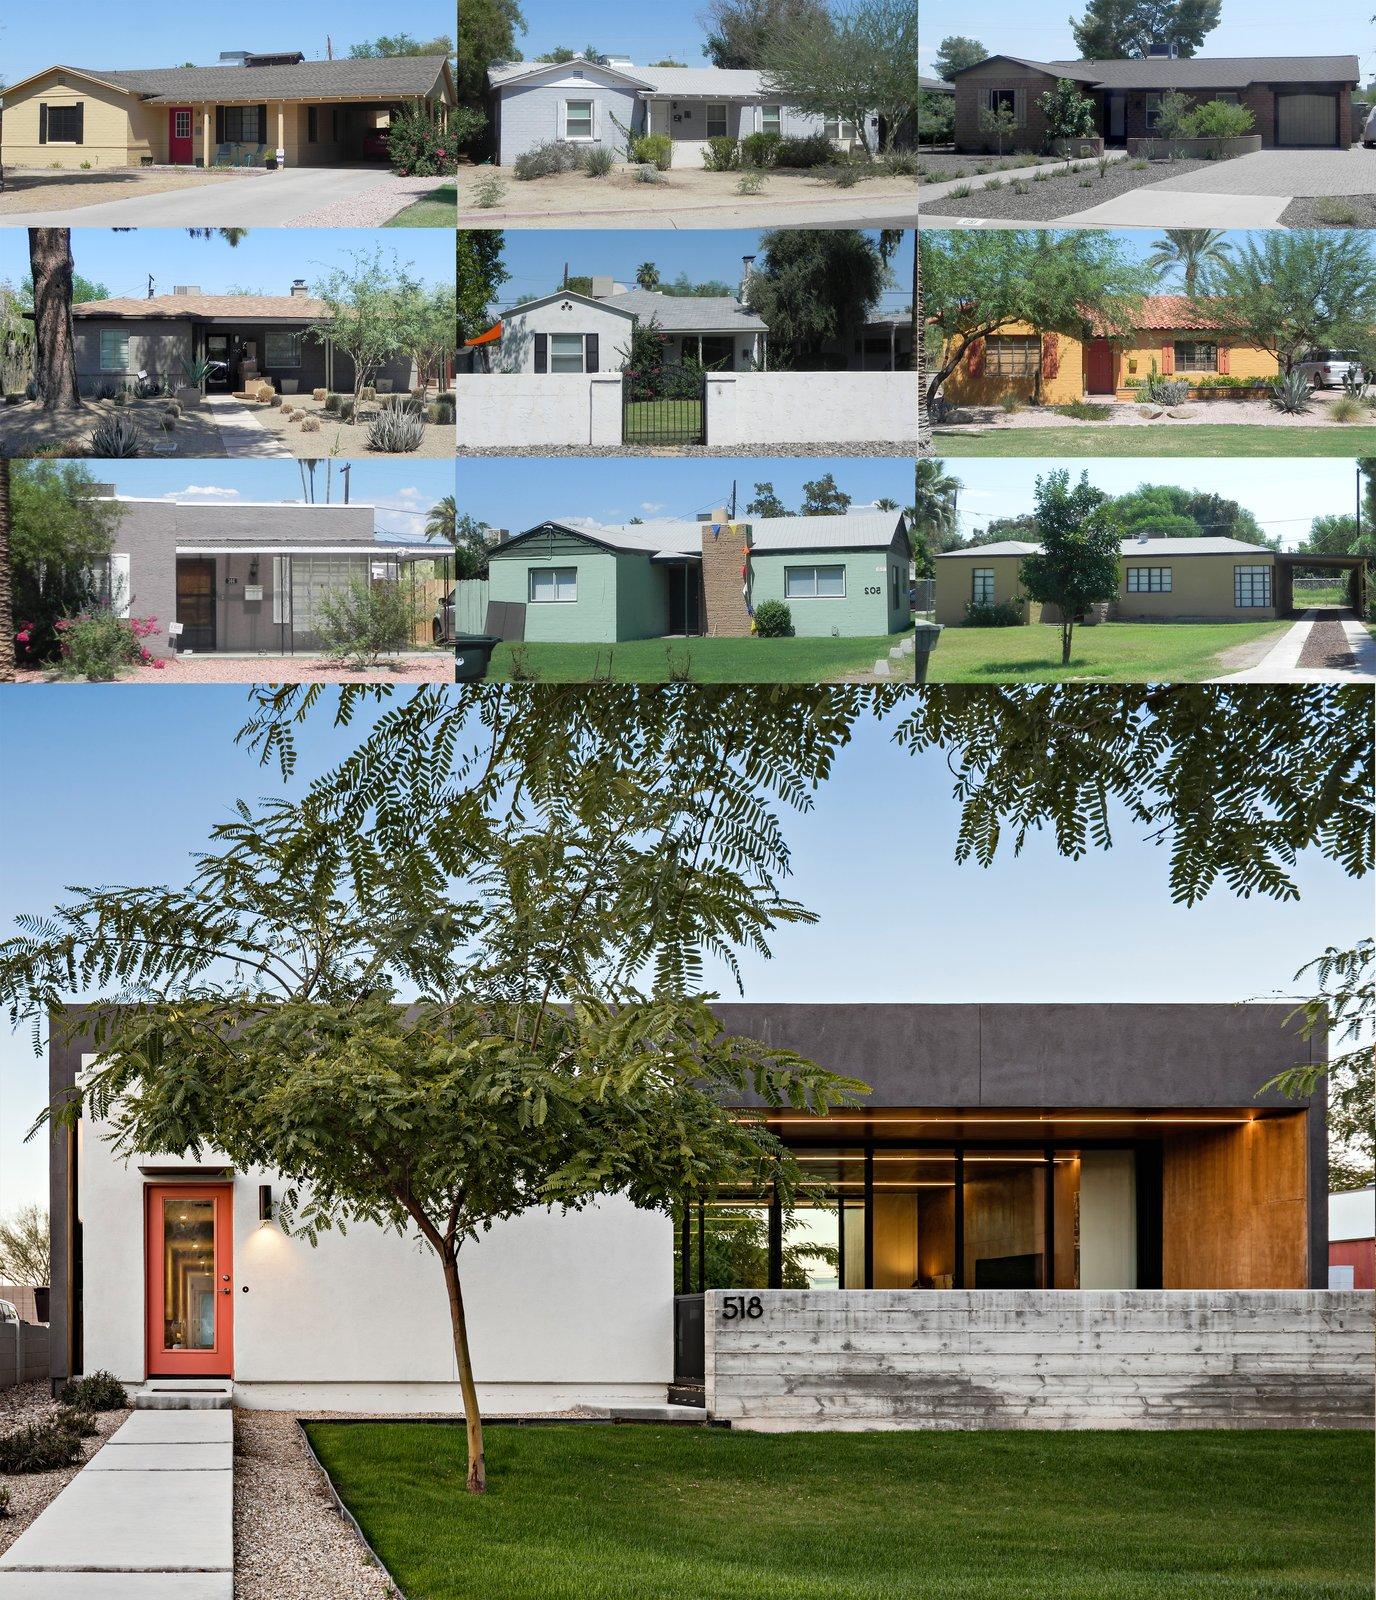 Compilation of the front elevations of the historic homes in the neighborhood and the resulting modern elevation of 'Link' Tagged: Outdoor. Link House by The Ranch Mine